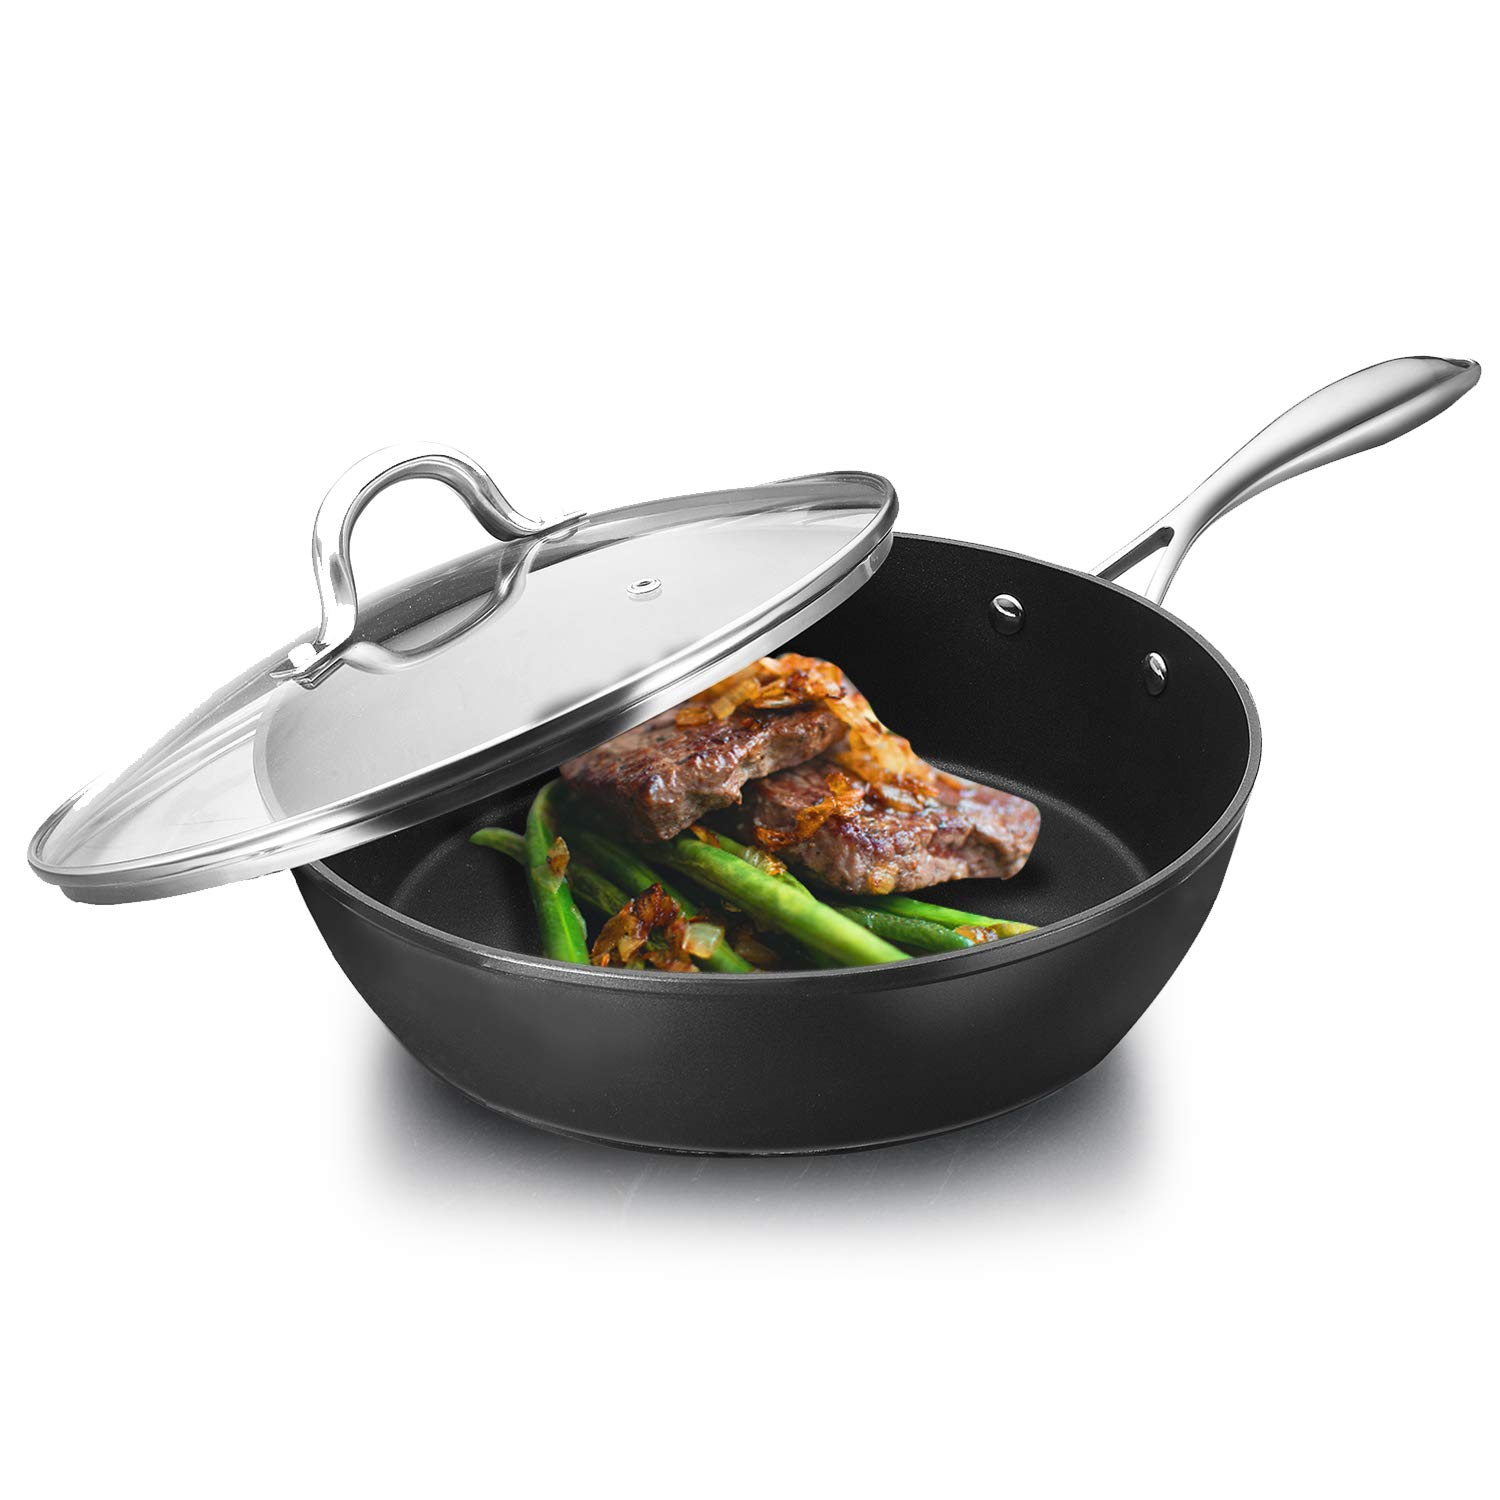 COOKER KING Nonstick Skillet with Lid, Induction Compatible, Dishwasher Safe, Oven Safe, Fast Heating, Anti-Warp Base, Stainless Steel Handle, 11-Inch Multi-Function Nonstick Frying Pan with Lid